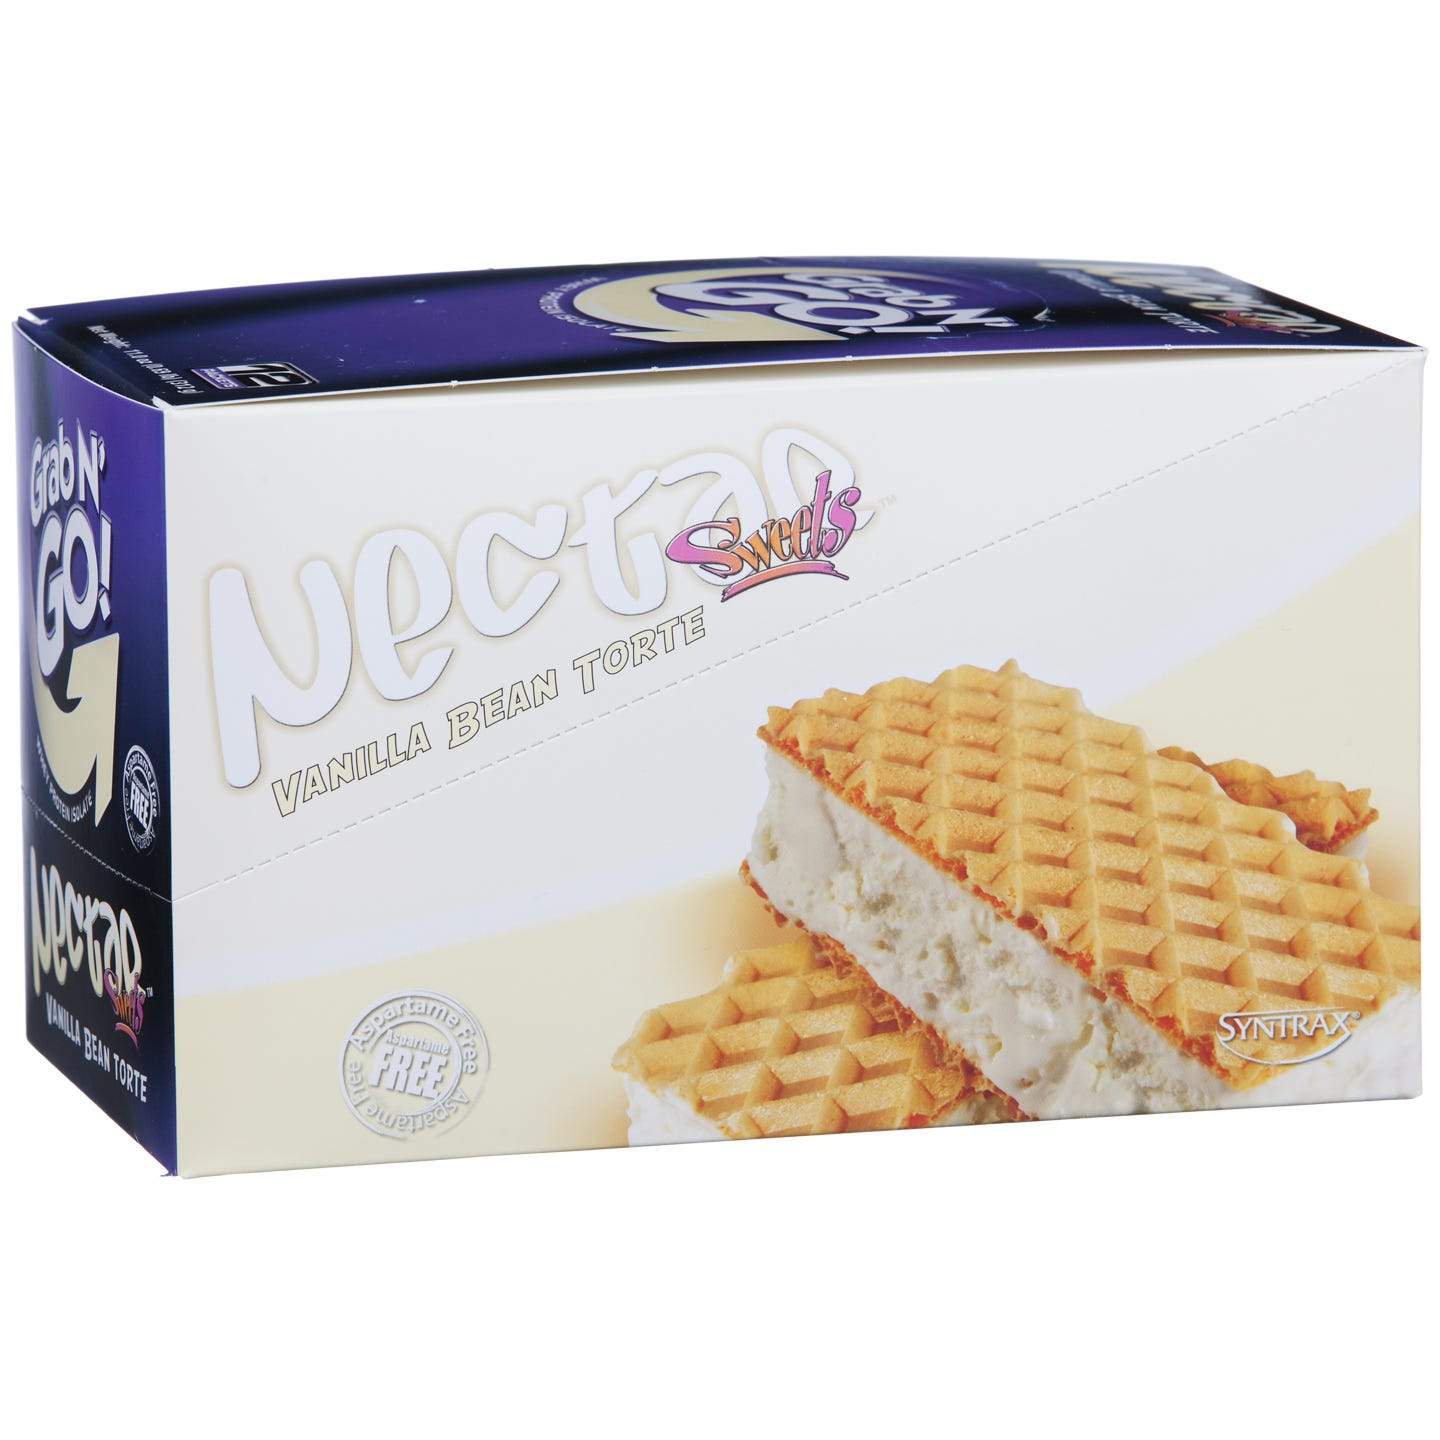 Grab N' Go! Protein Vanilla Bean Torte (12 ct) - Syntrax Nectar - Rapid Diet Weight Loss Products Shop